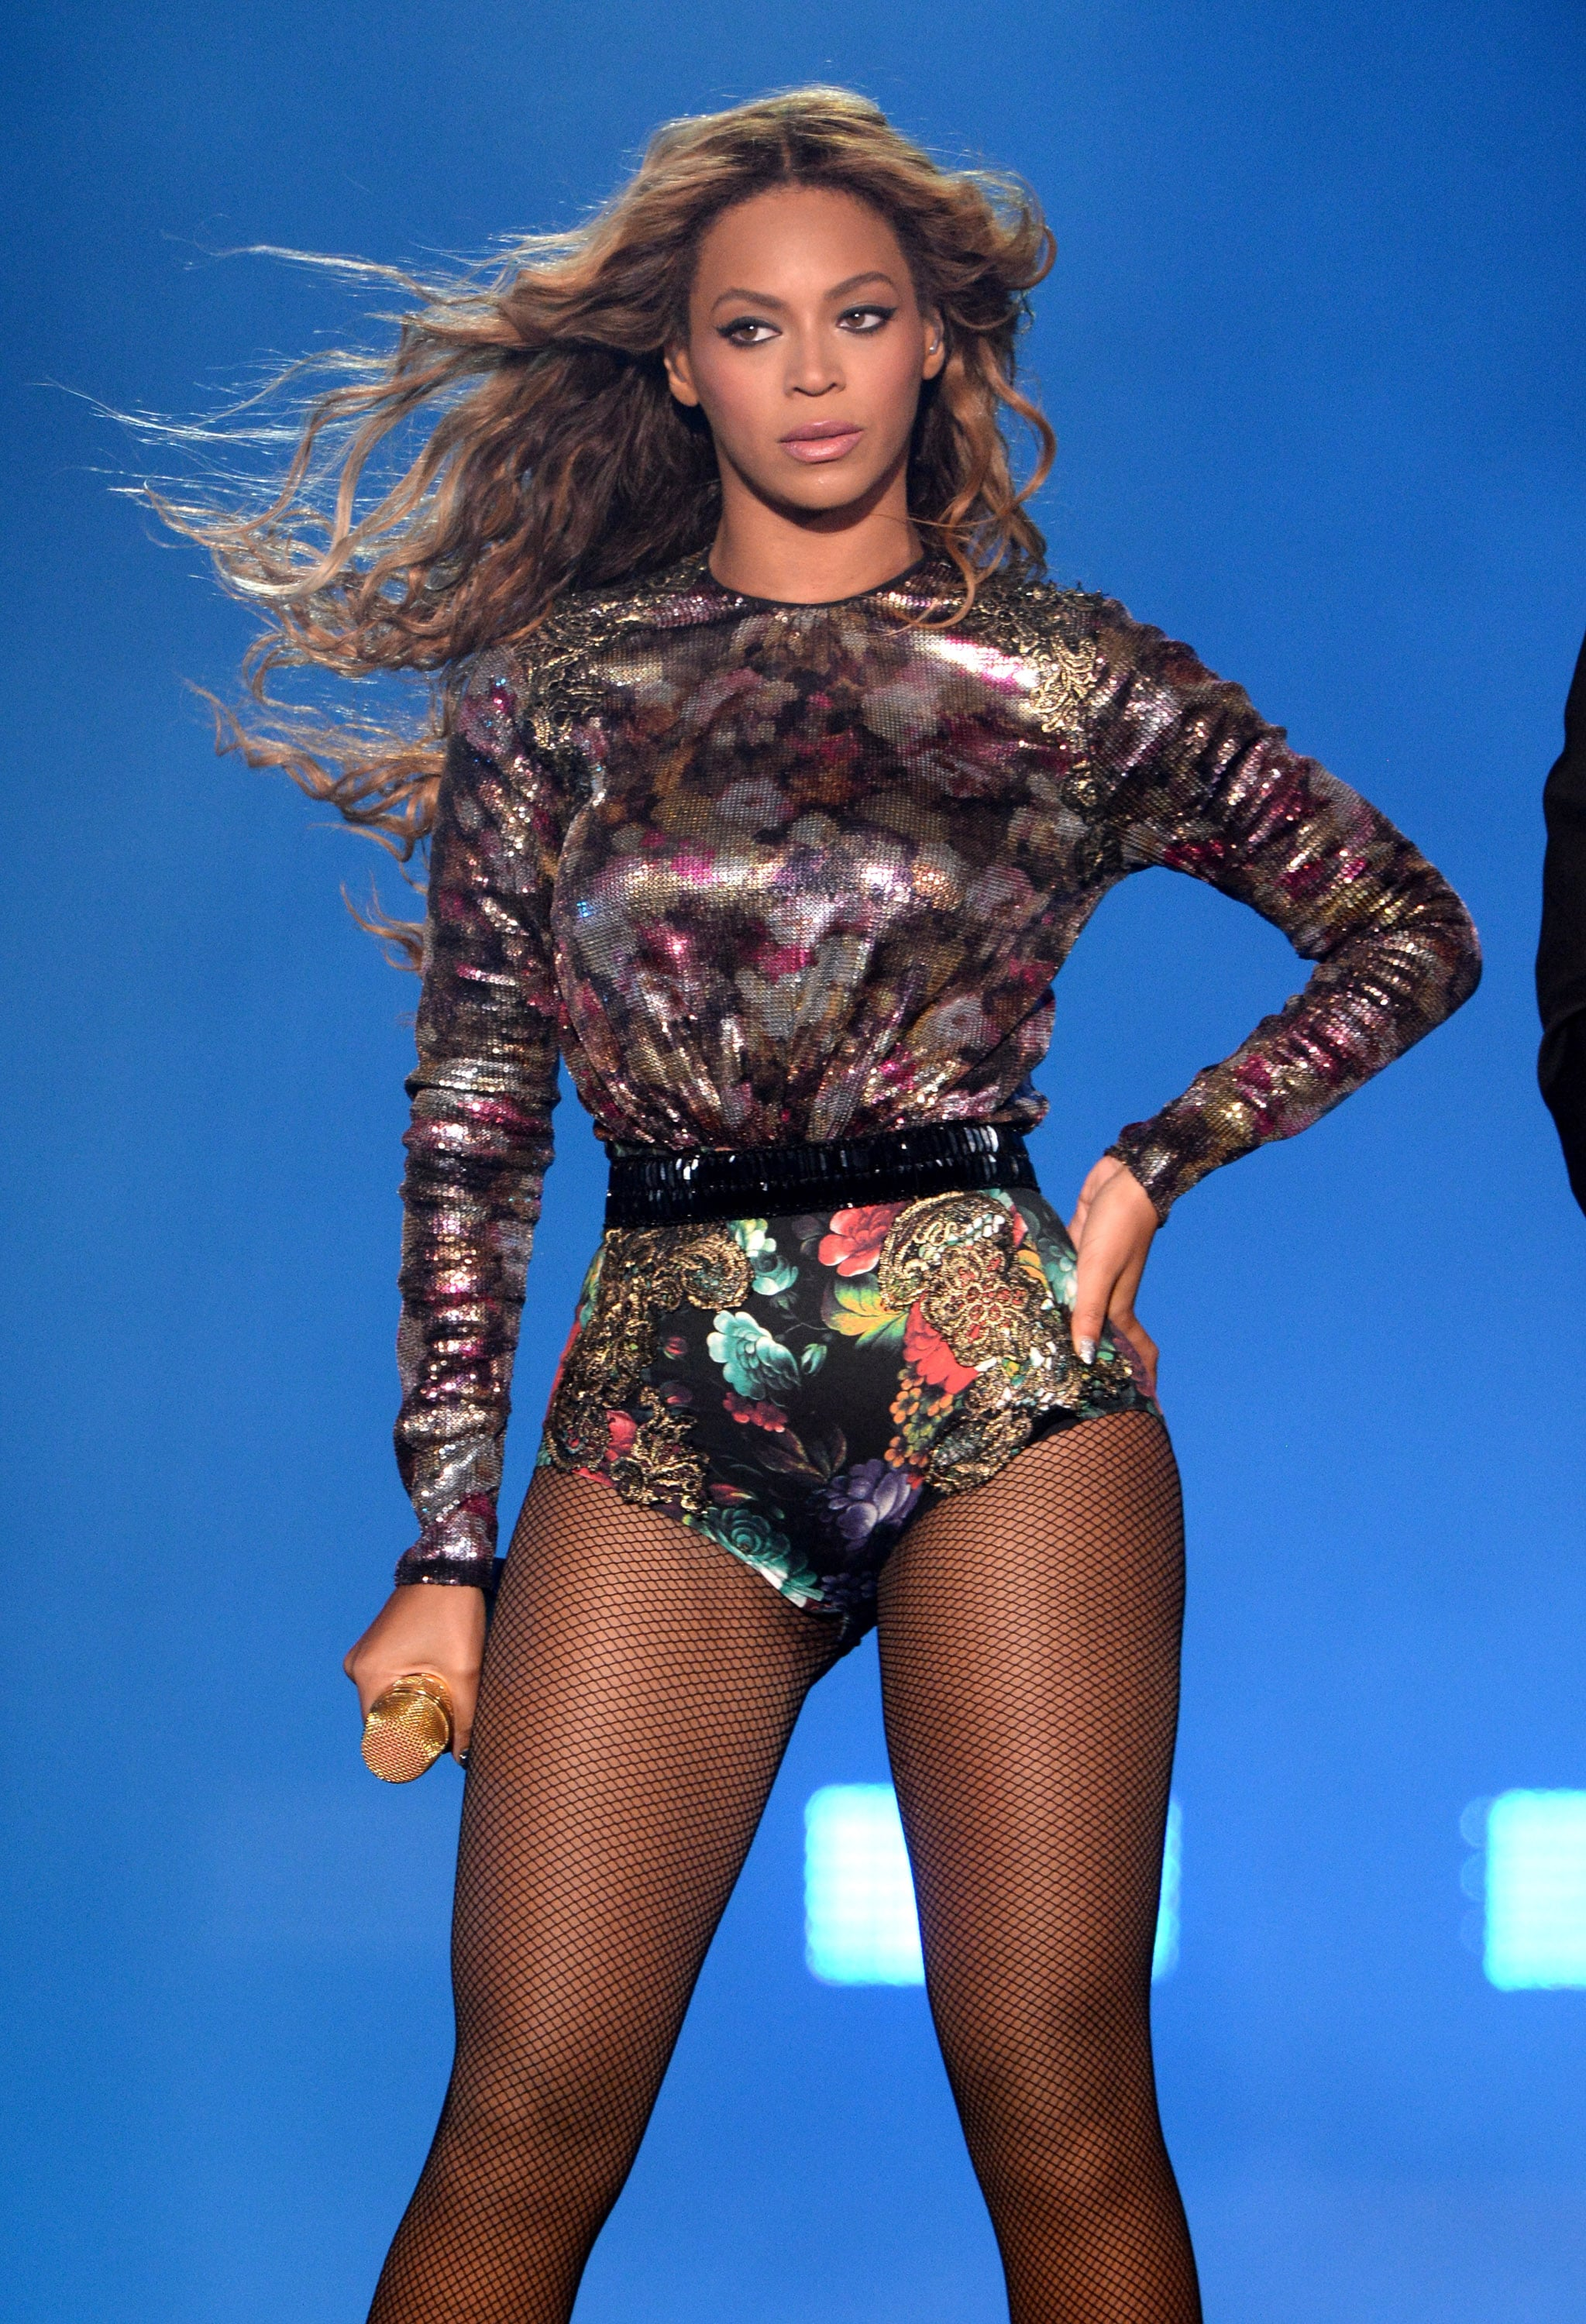 beyoncé in a floral leotard  there's no running from